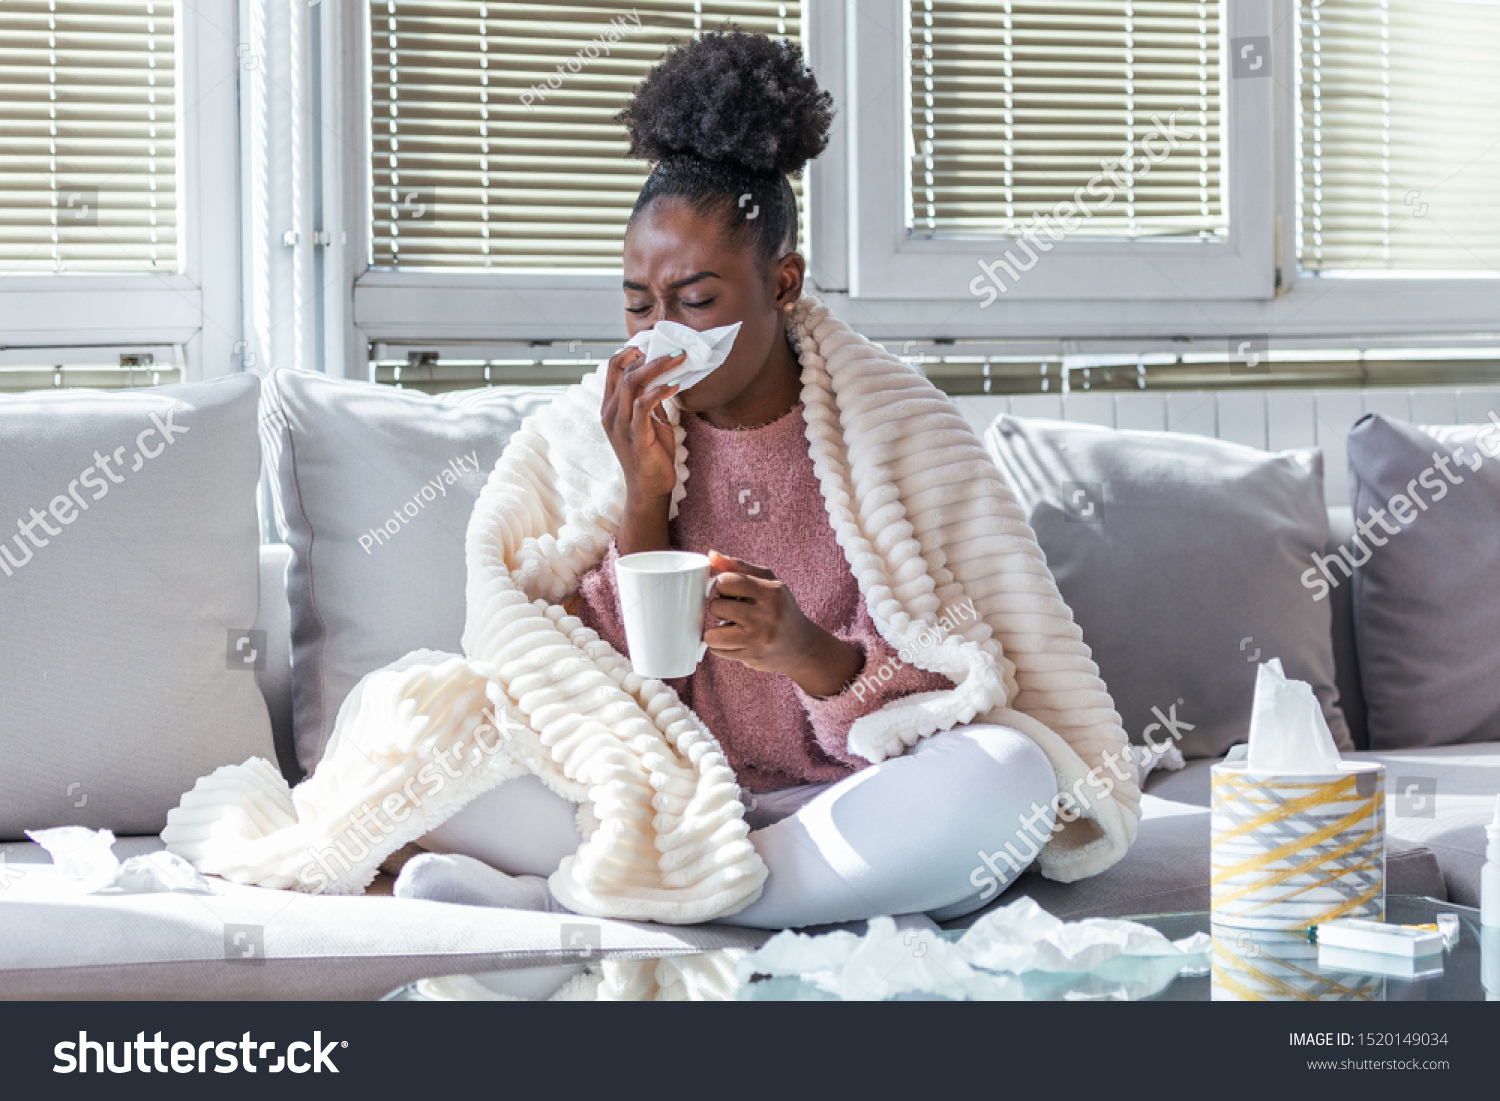 Sick day at home. African American woman has runny nose and common cold. Cough. Closeup Of Beautiful Young Woman Caught Cold Or Flu Illness. Portrait Of Unhealthy Girl Drinking Tea. #1520149034